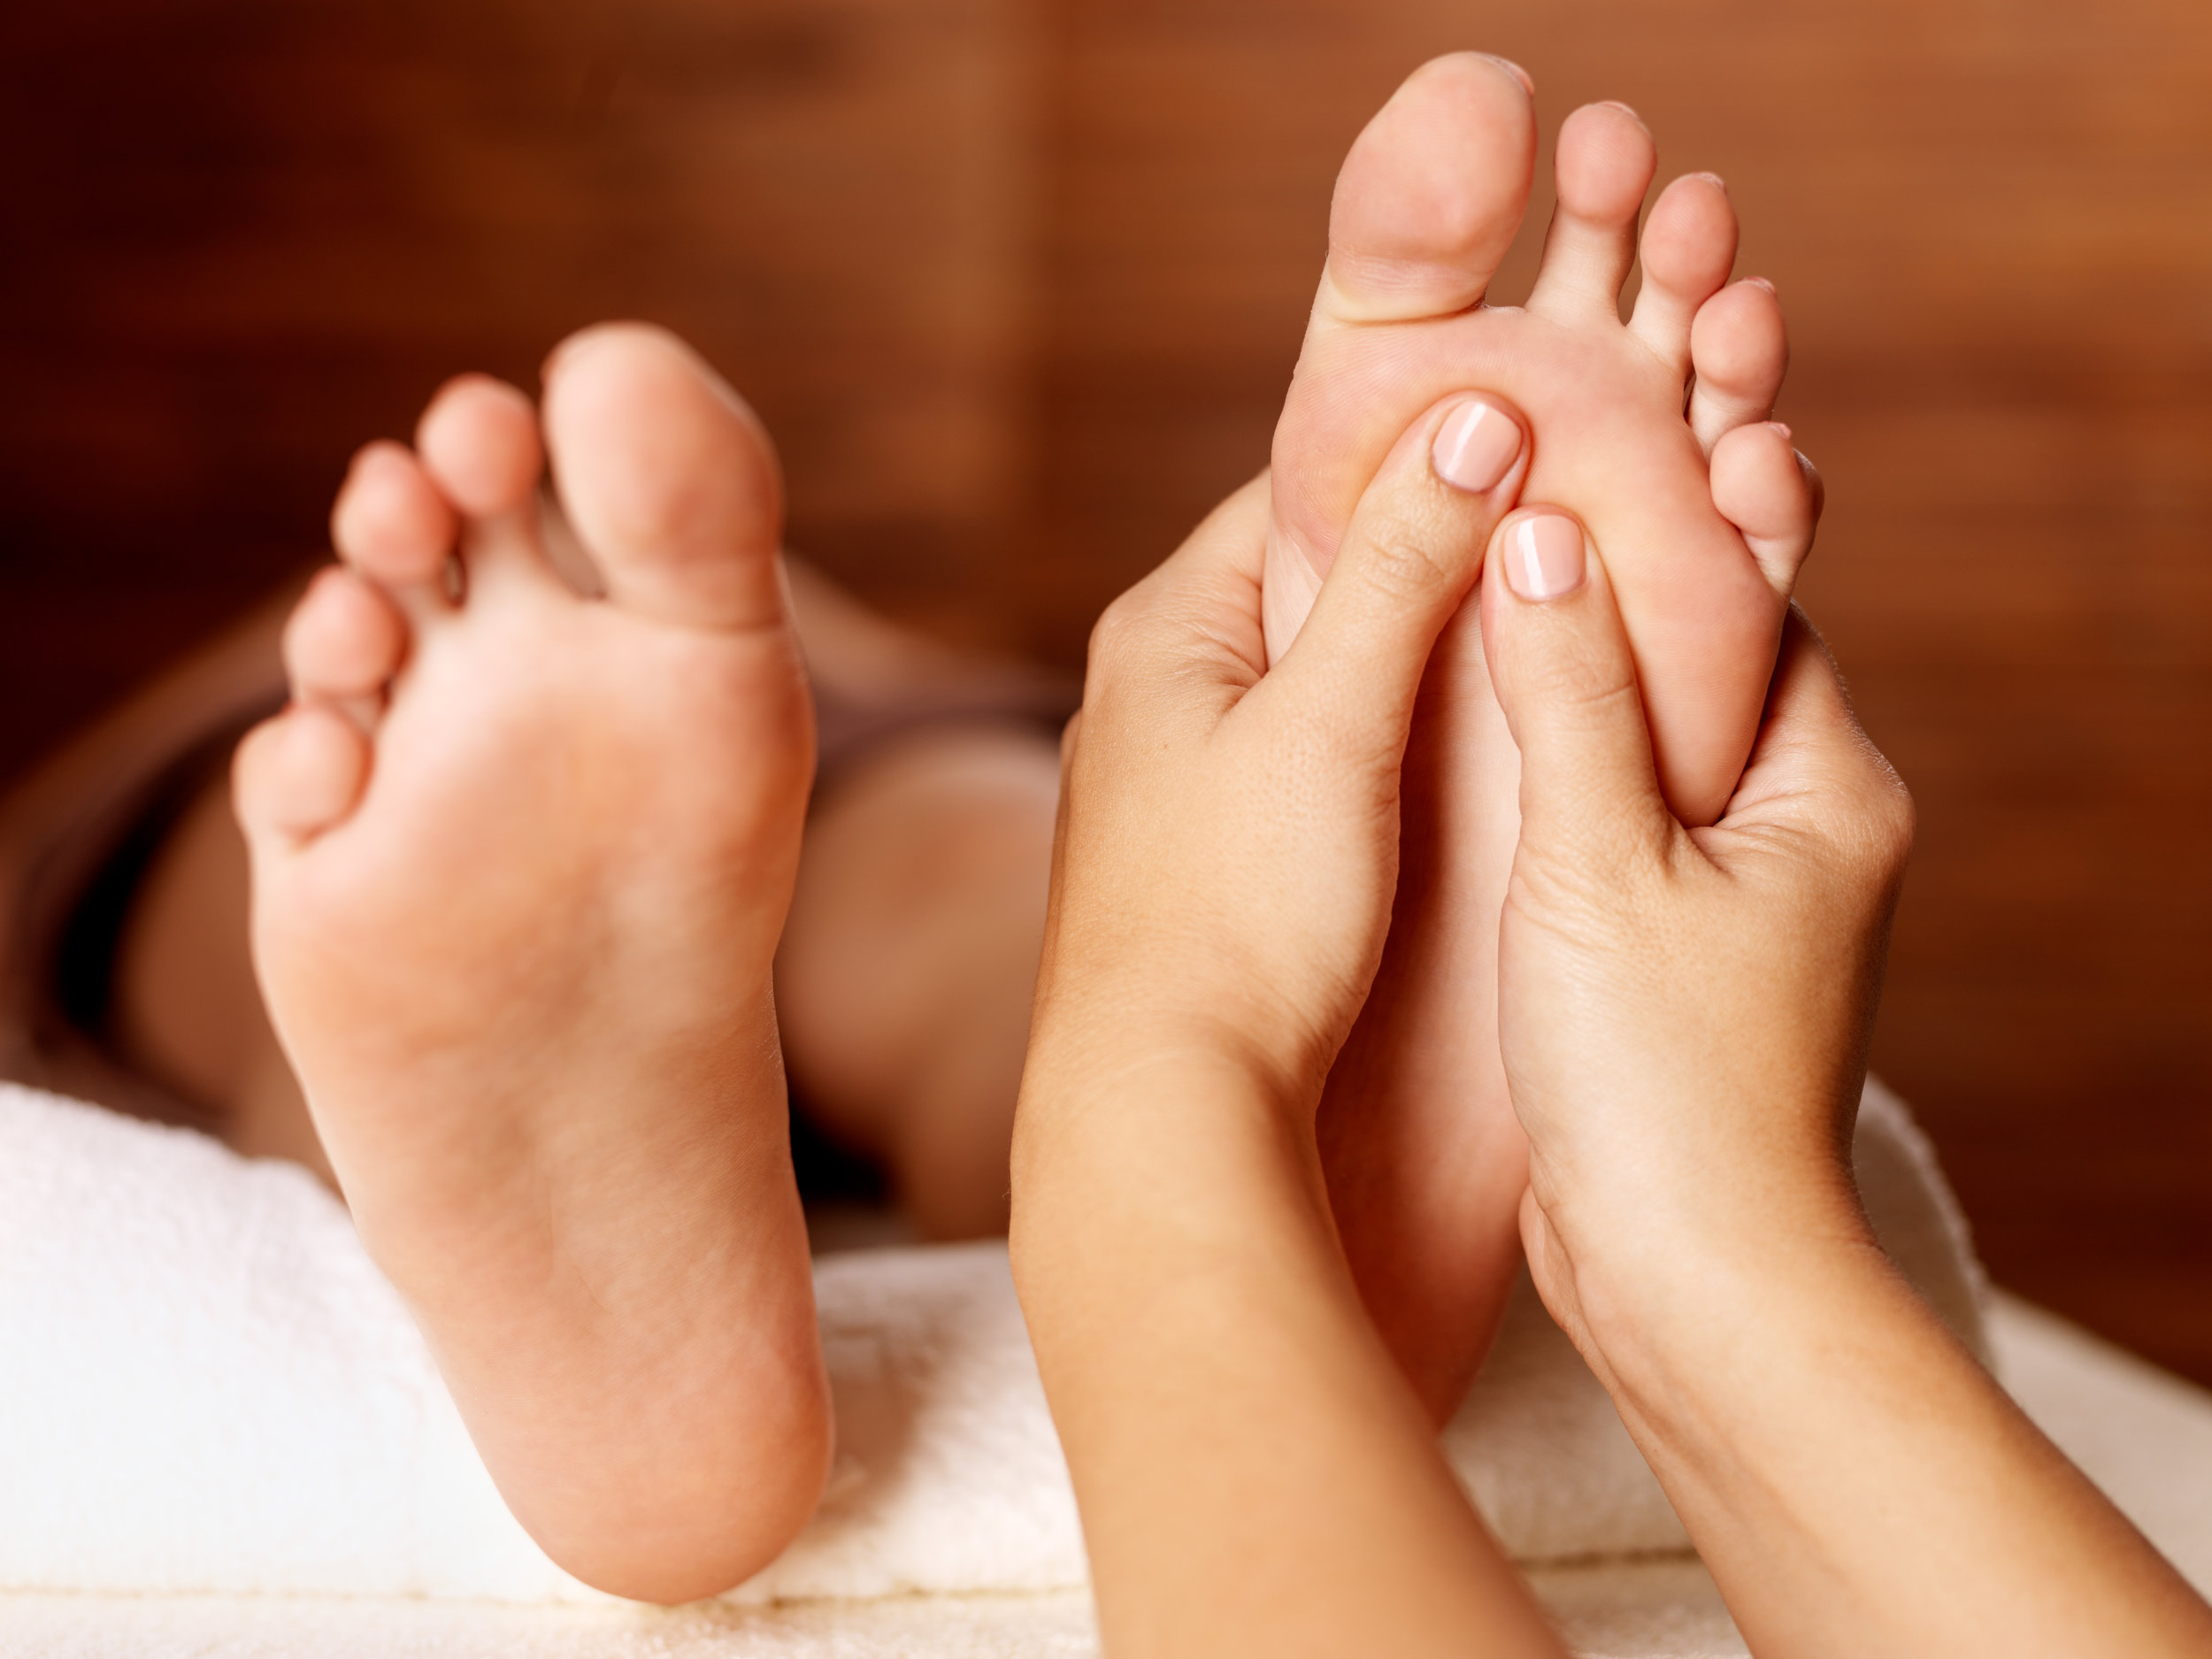 reflexology - Reflexology stimulates specific points (on the feet, hands and ears) that create effects in corresponding organs, glands, bones, muscles and systems of the body. Reflexology is deeply relaxing & detoxifying and produces an incredible healing response in both the body and the mind.